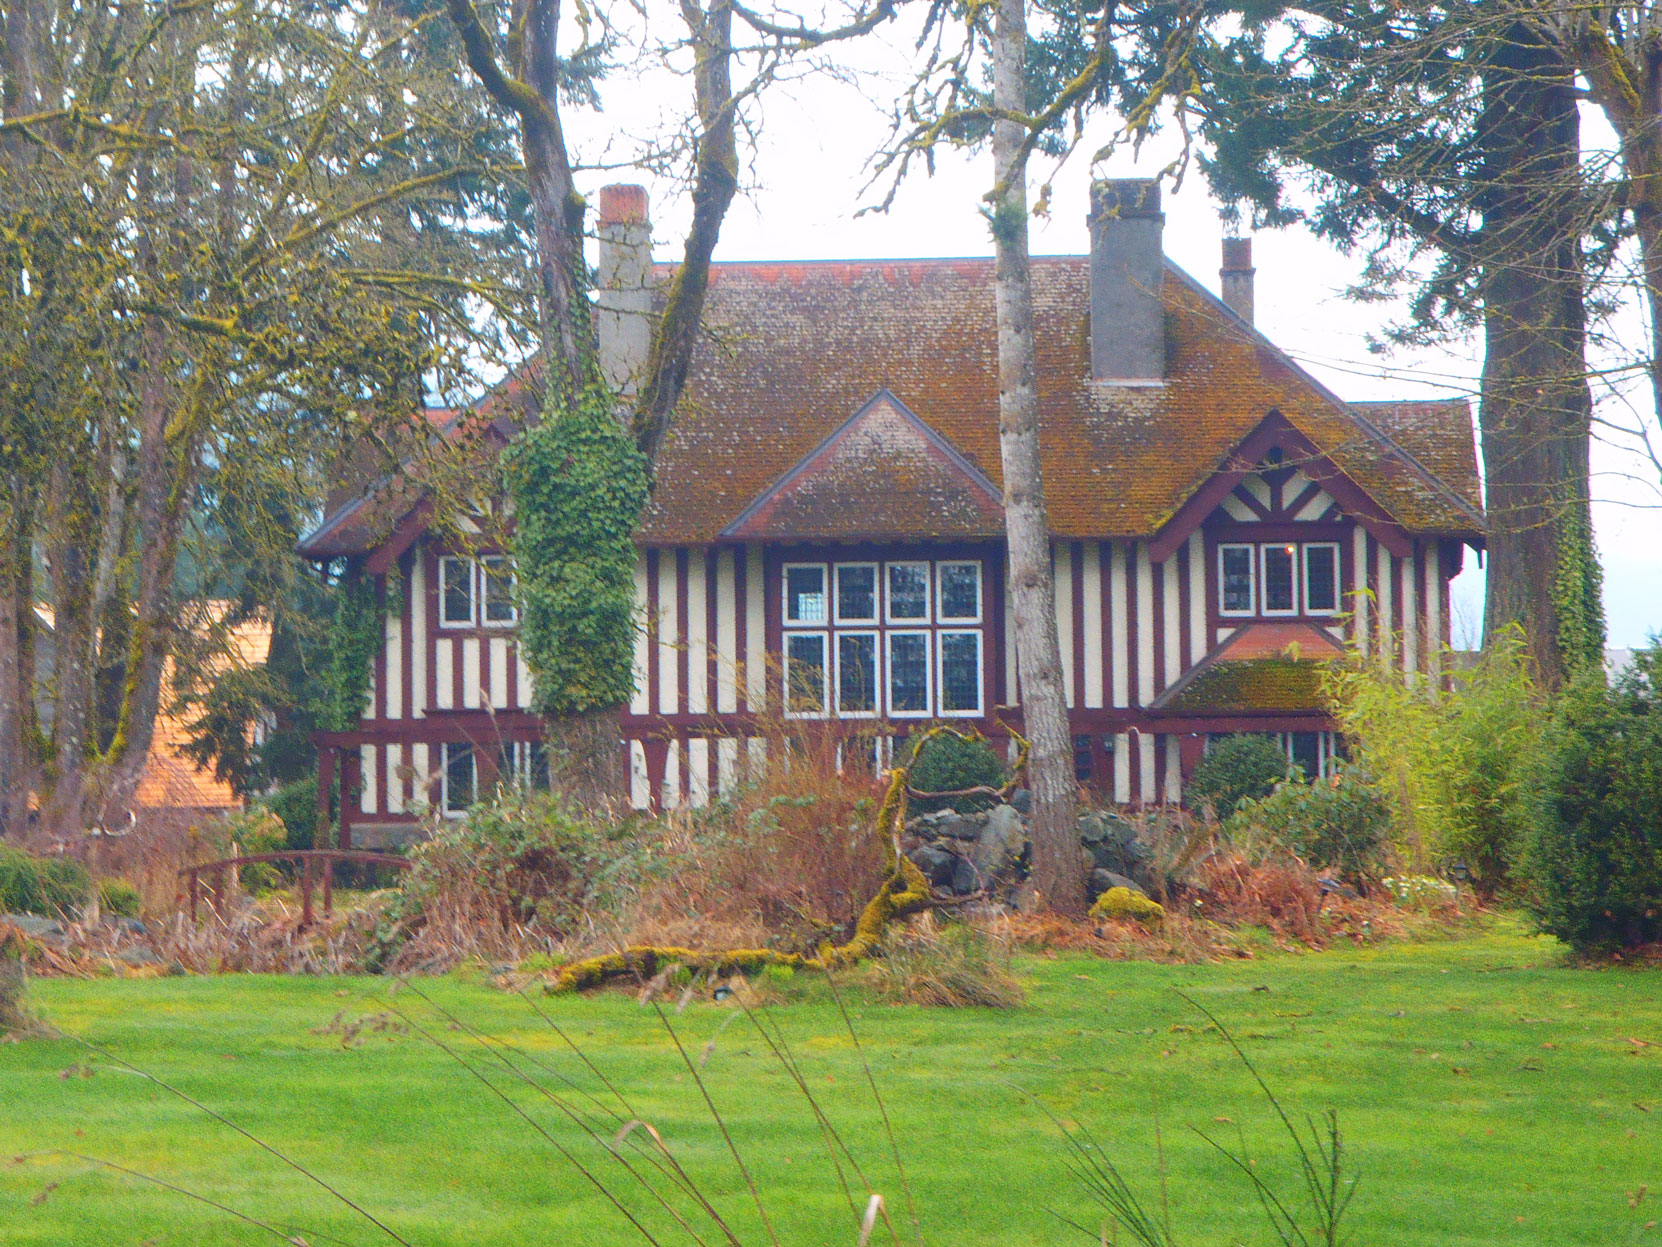 The Grange, 3443 Drinkwater Raod, North Cowichan. Built in 1911 by architect Samuel Maclure for Sir Clive Phillips-Wolley (photo by Temple Lodge No. 33 Historian)